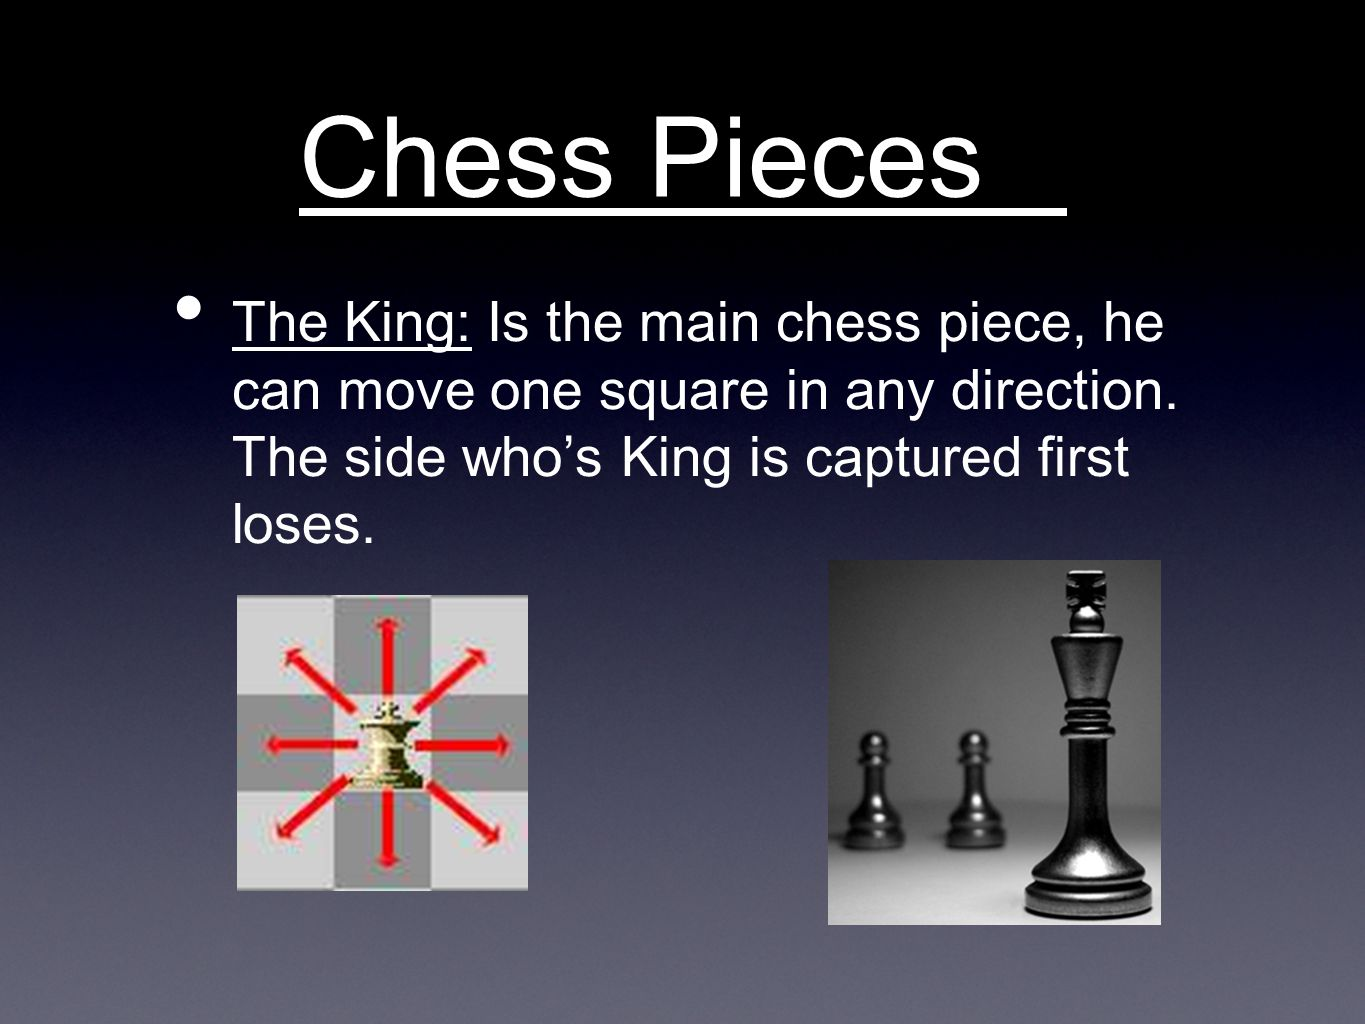 Chess Pieces The King: Is the main chess piece, he can move one square in any direction.